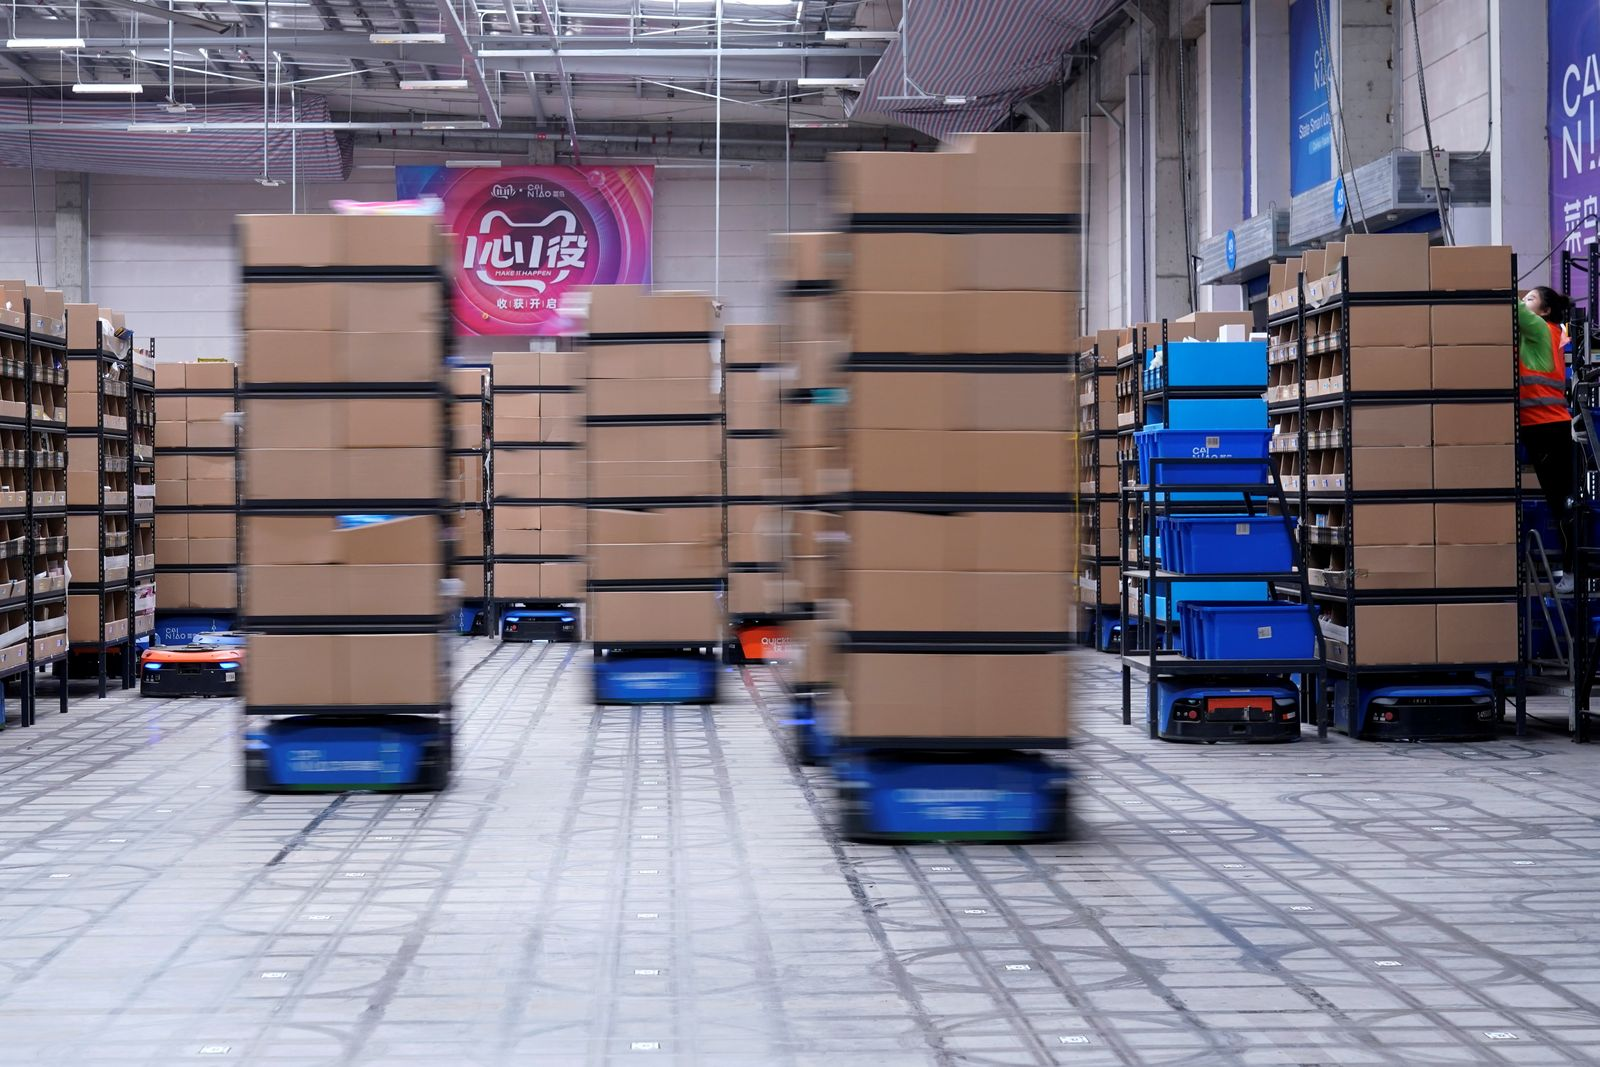 Robots work at Cainiao, Alibaba's logistics unit in Wuxi